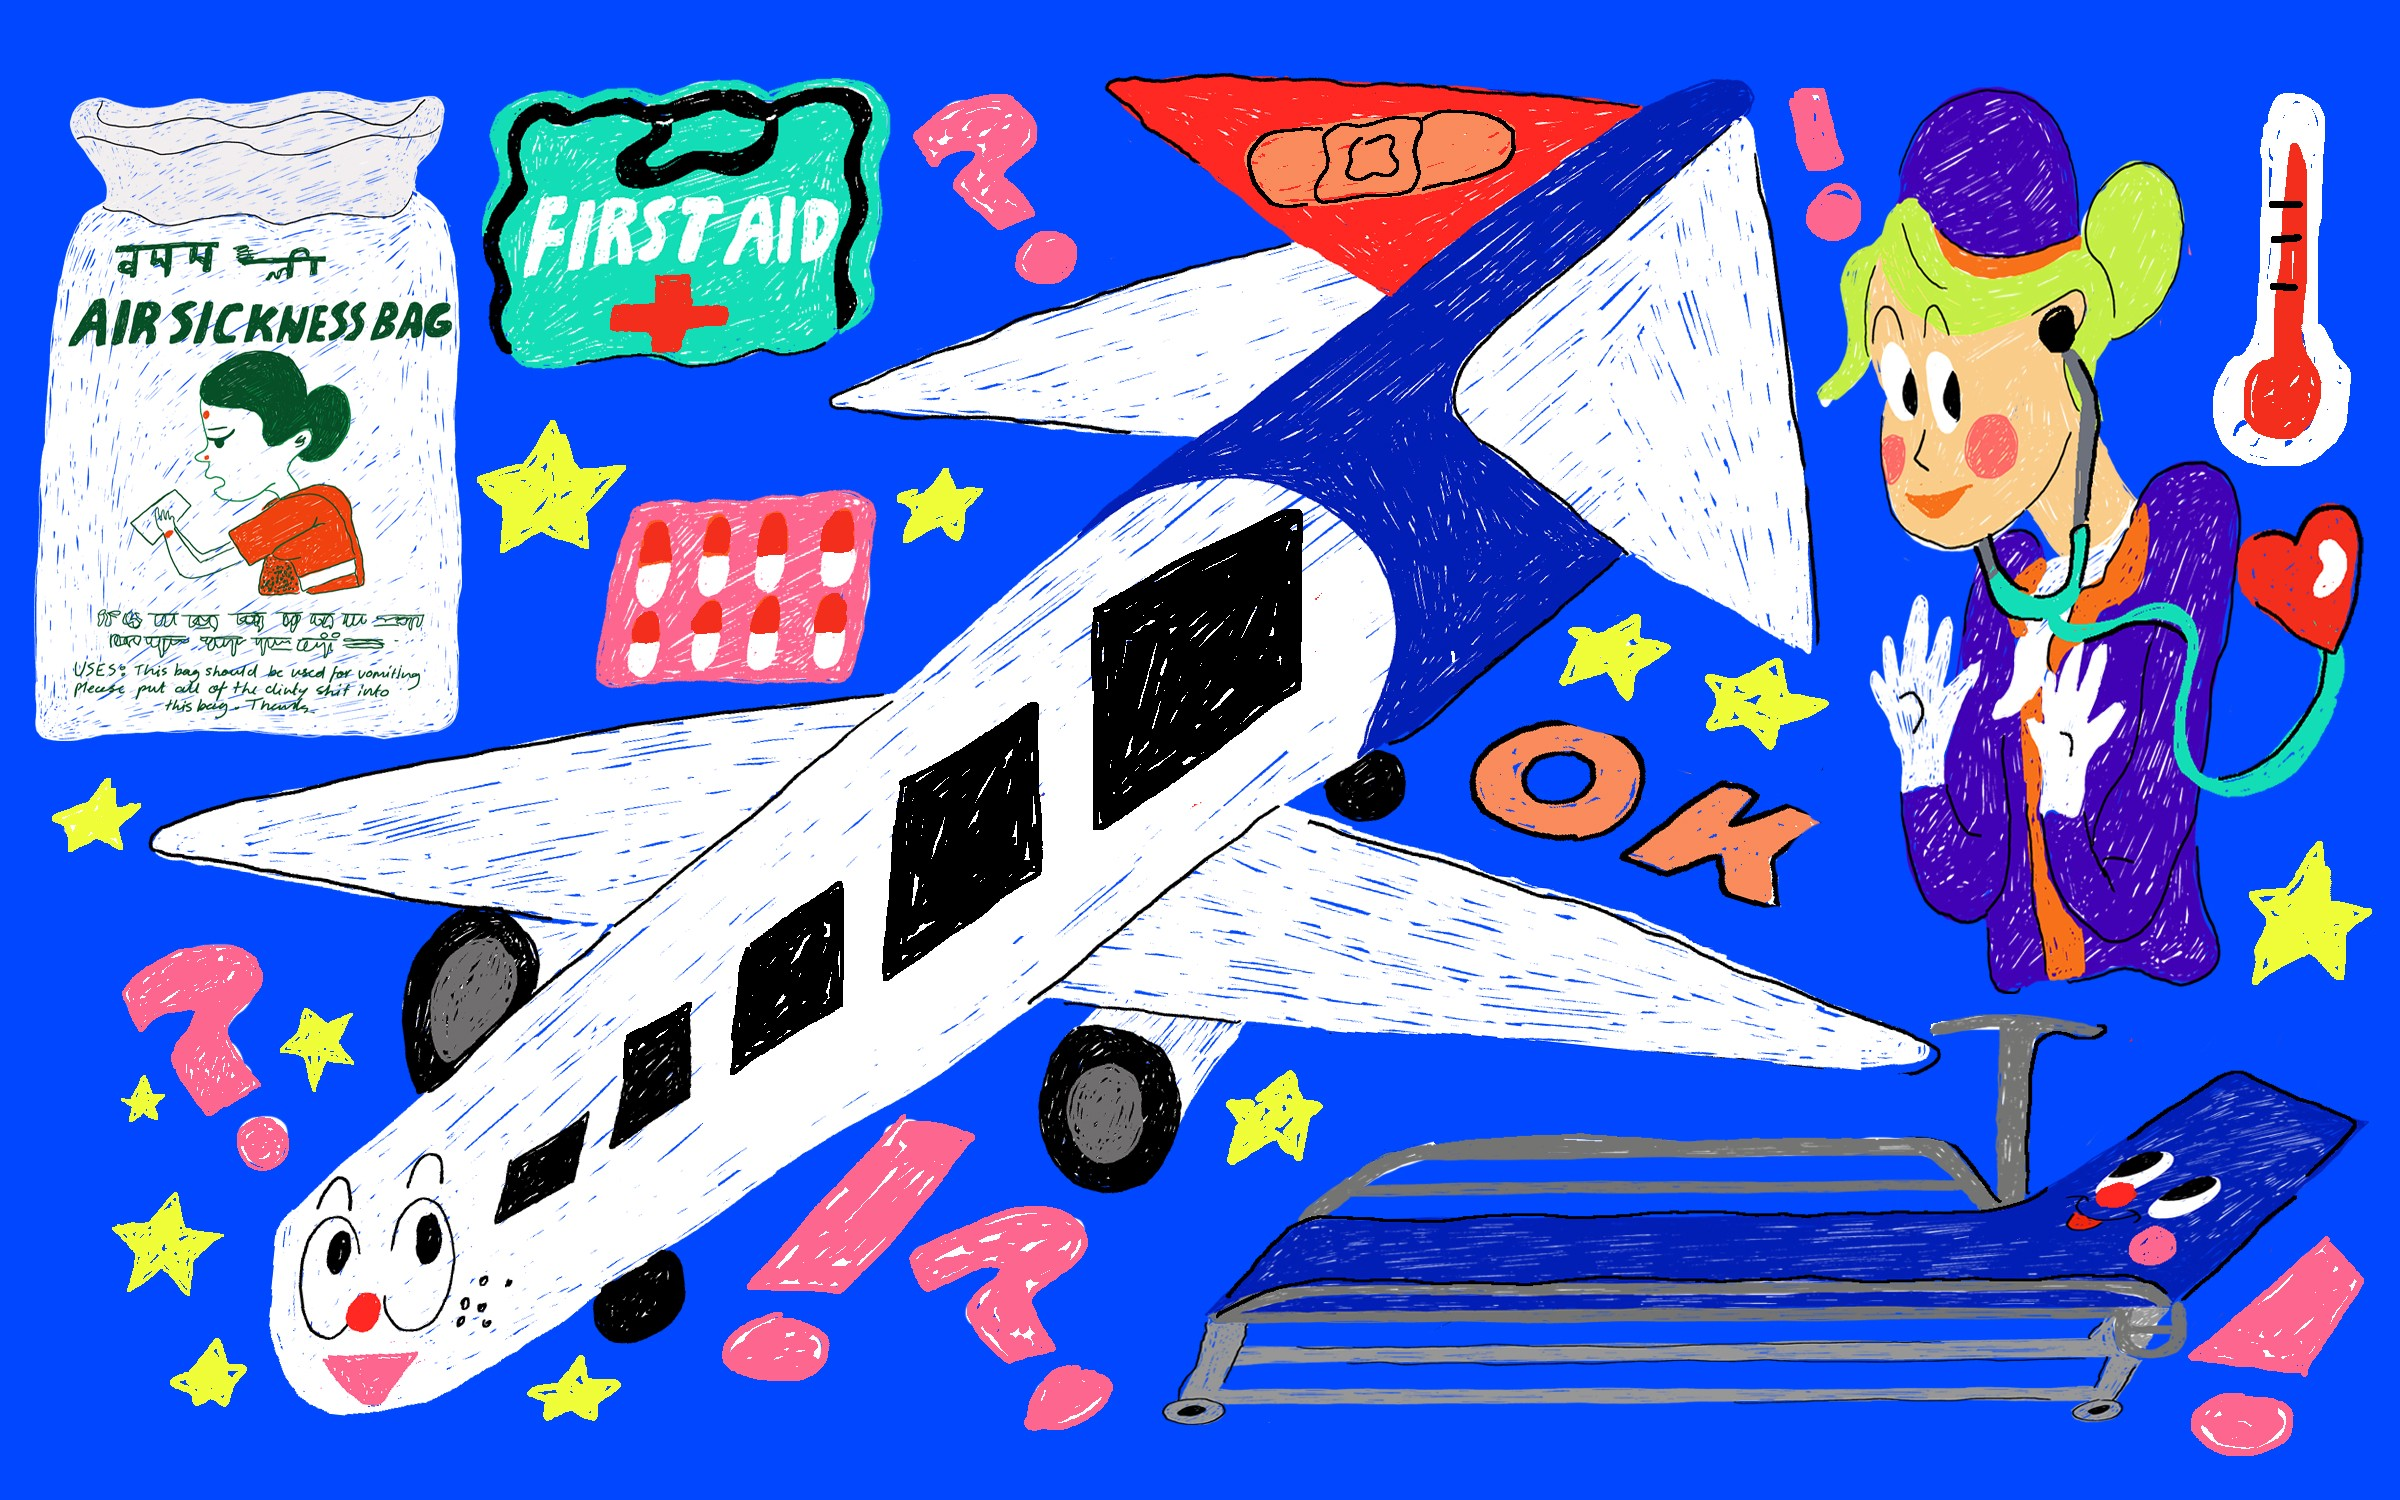 A collage illustration of a plane, air sickness bag, a first aid kit, a bandaid, pills, and a flight attendant.